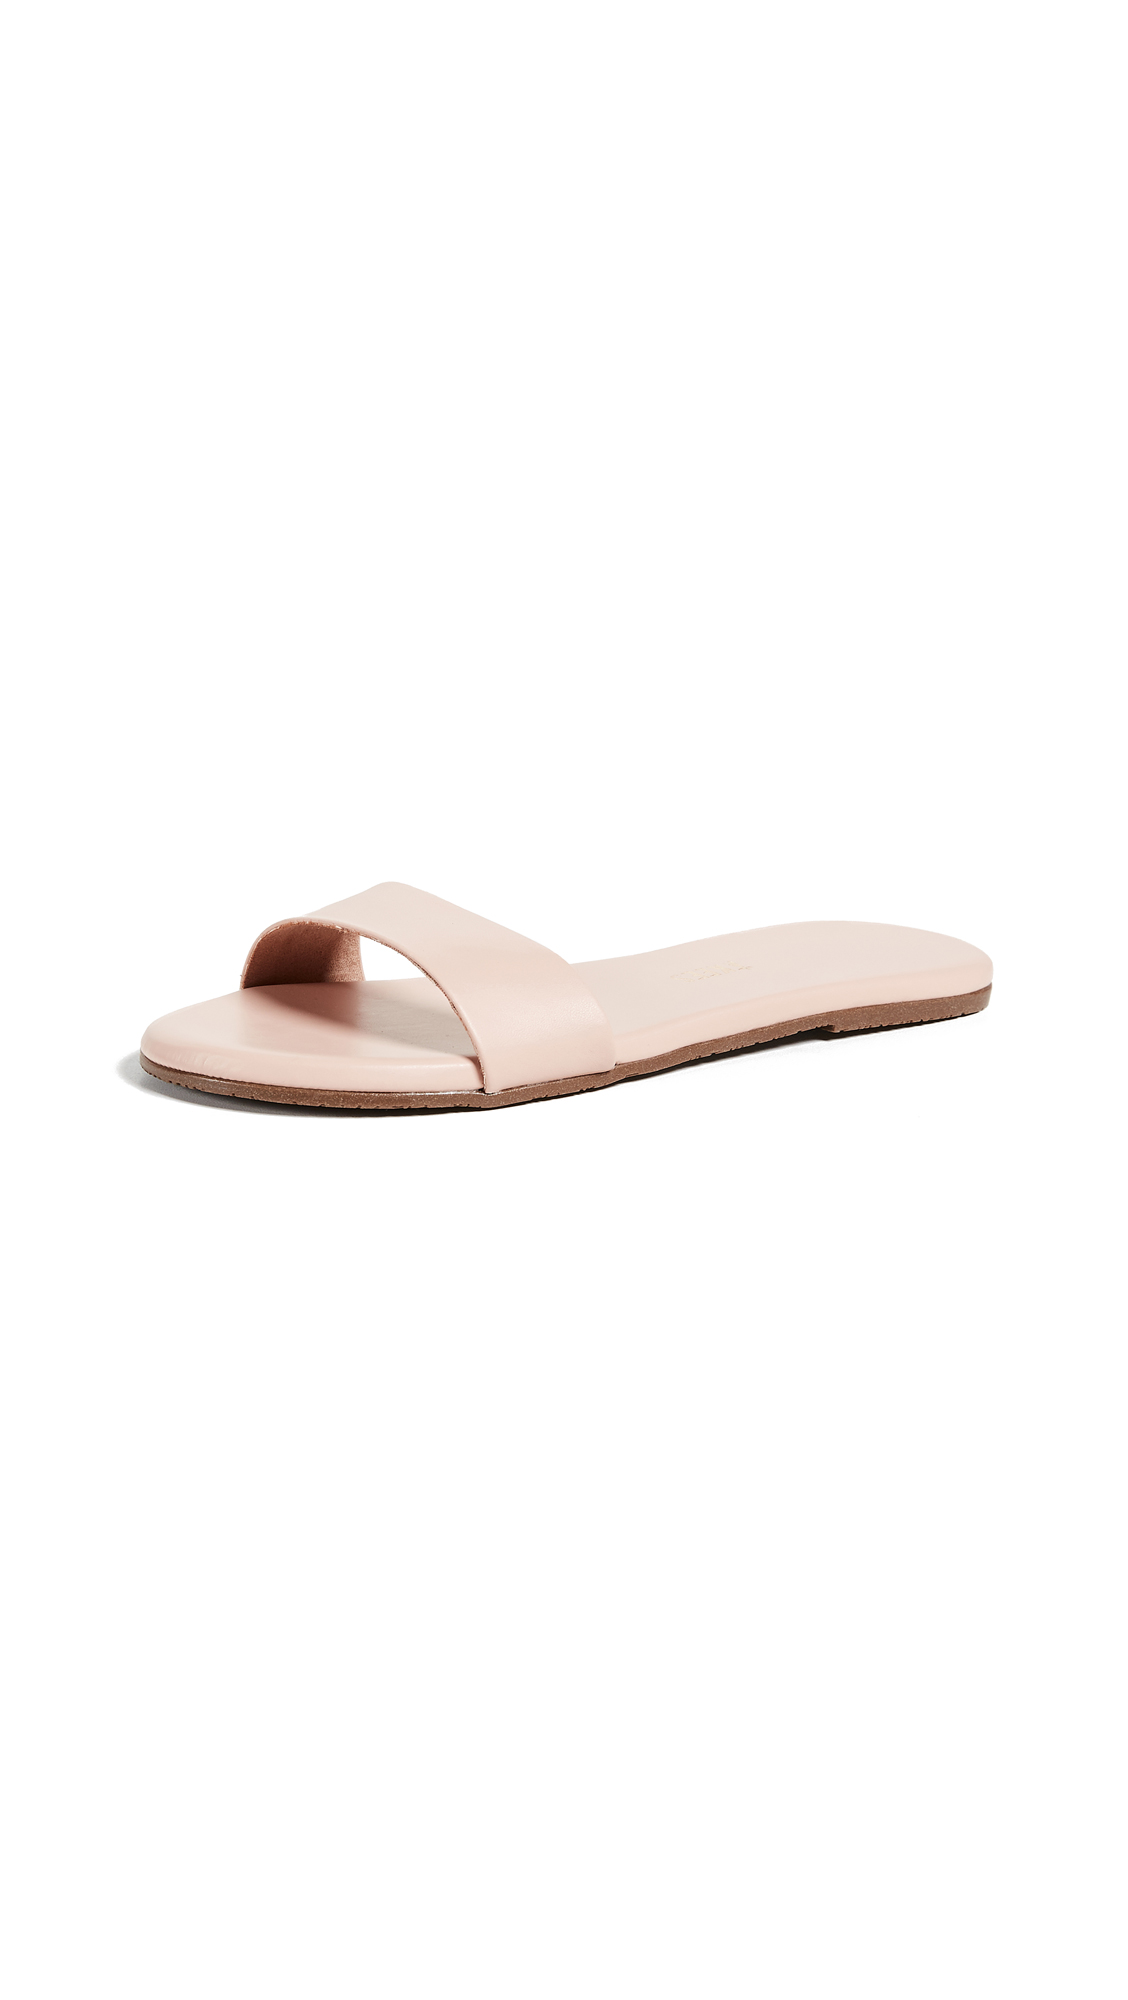 TKEES Alex Slides - Rose Quartz